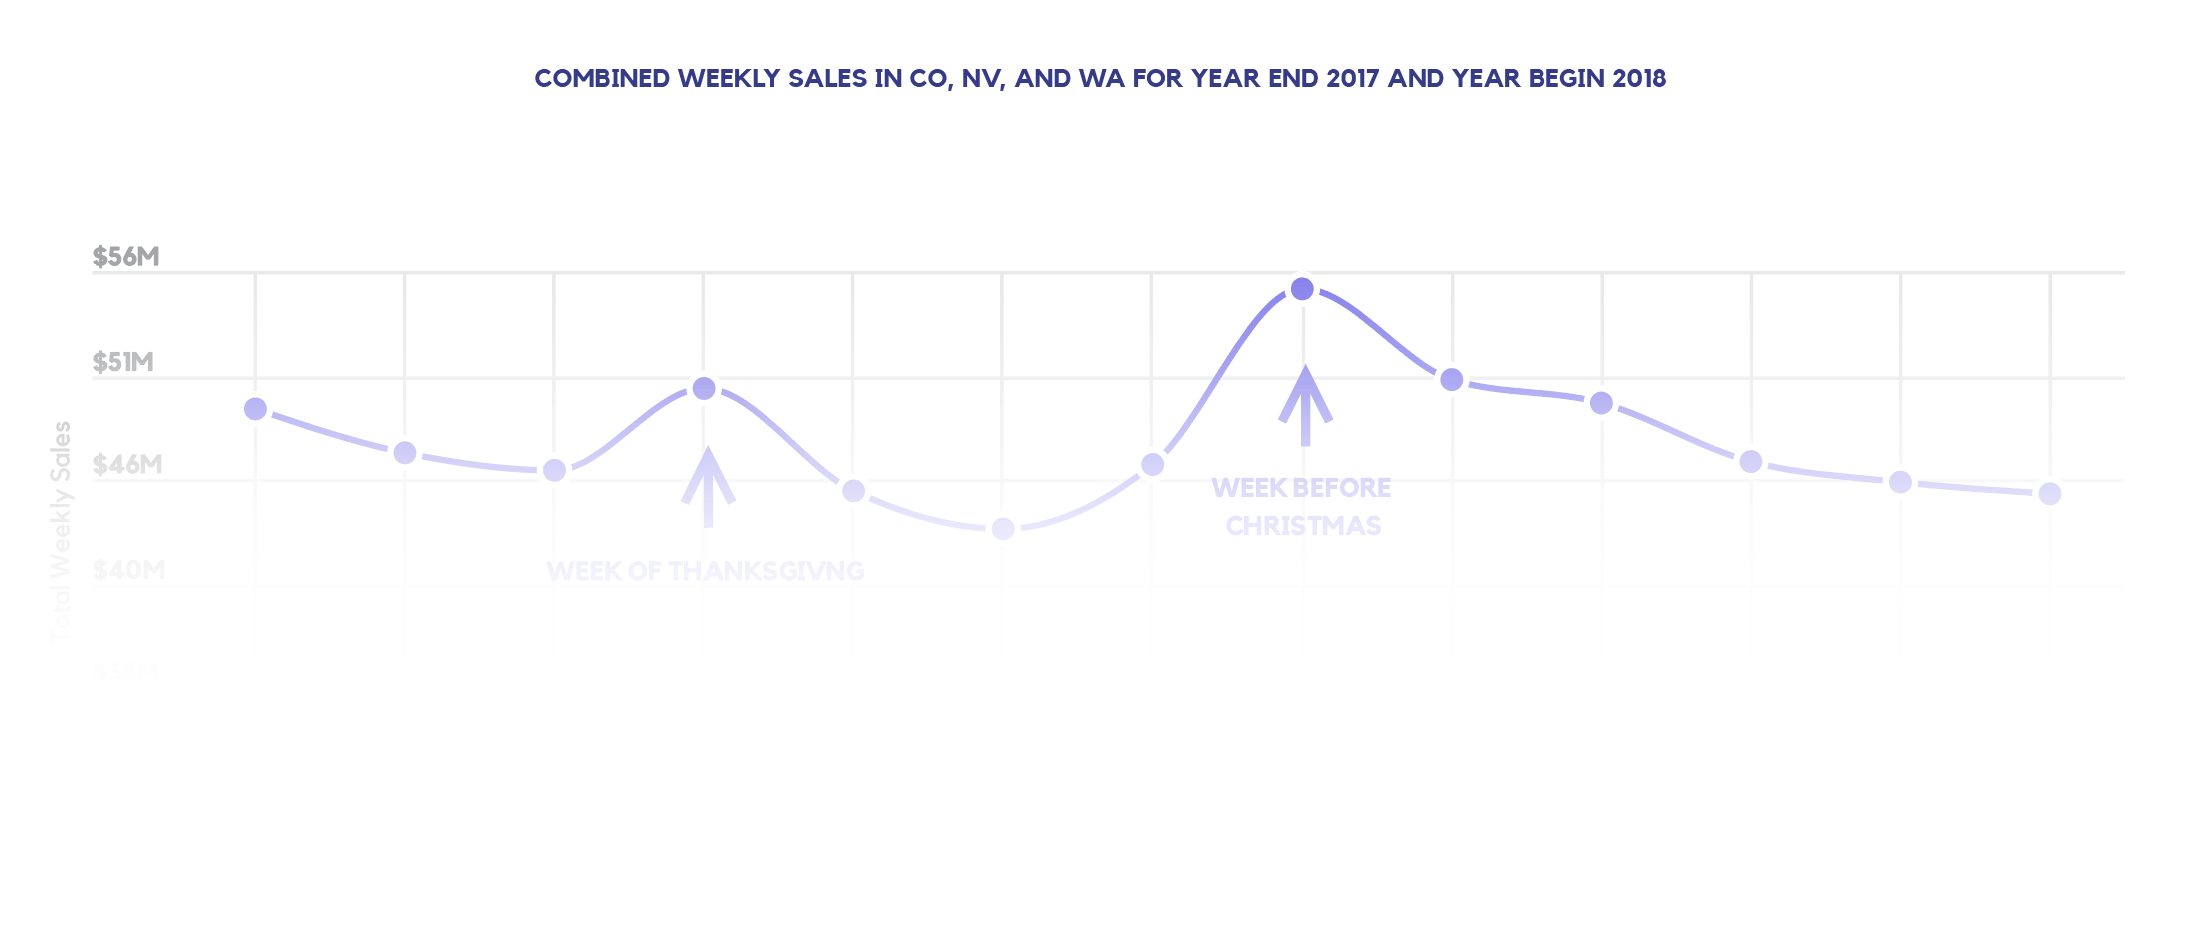 COMBINED WEEKLY SALES IN CO, NV, AND WA FOR YEAR END 2017 AND YEAR BEGIN 2018